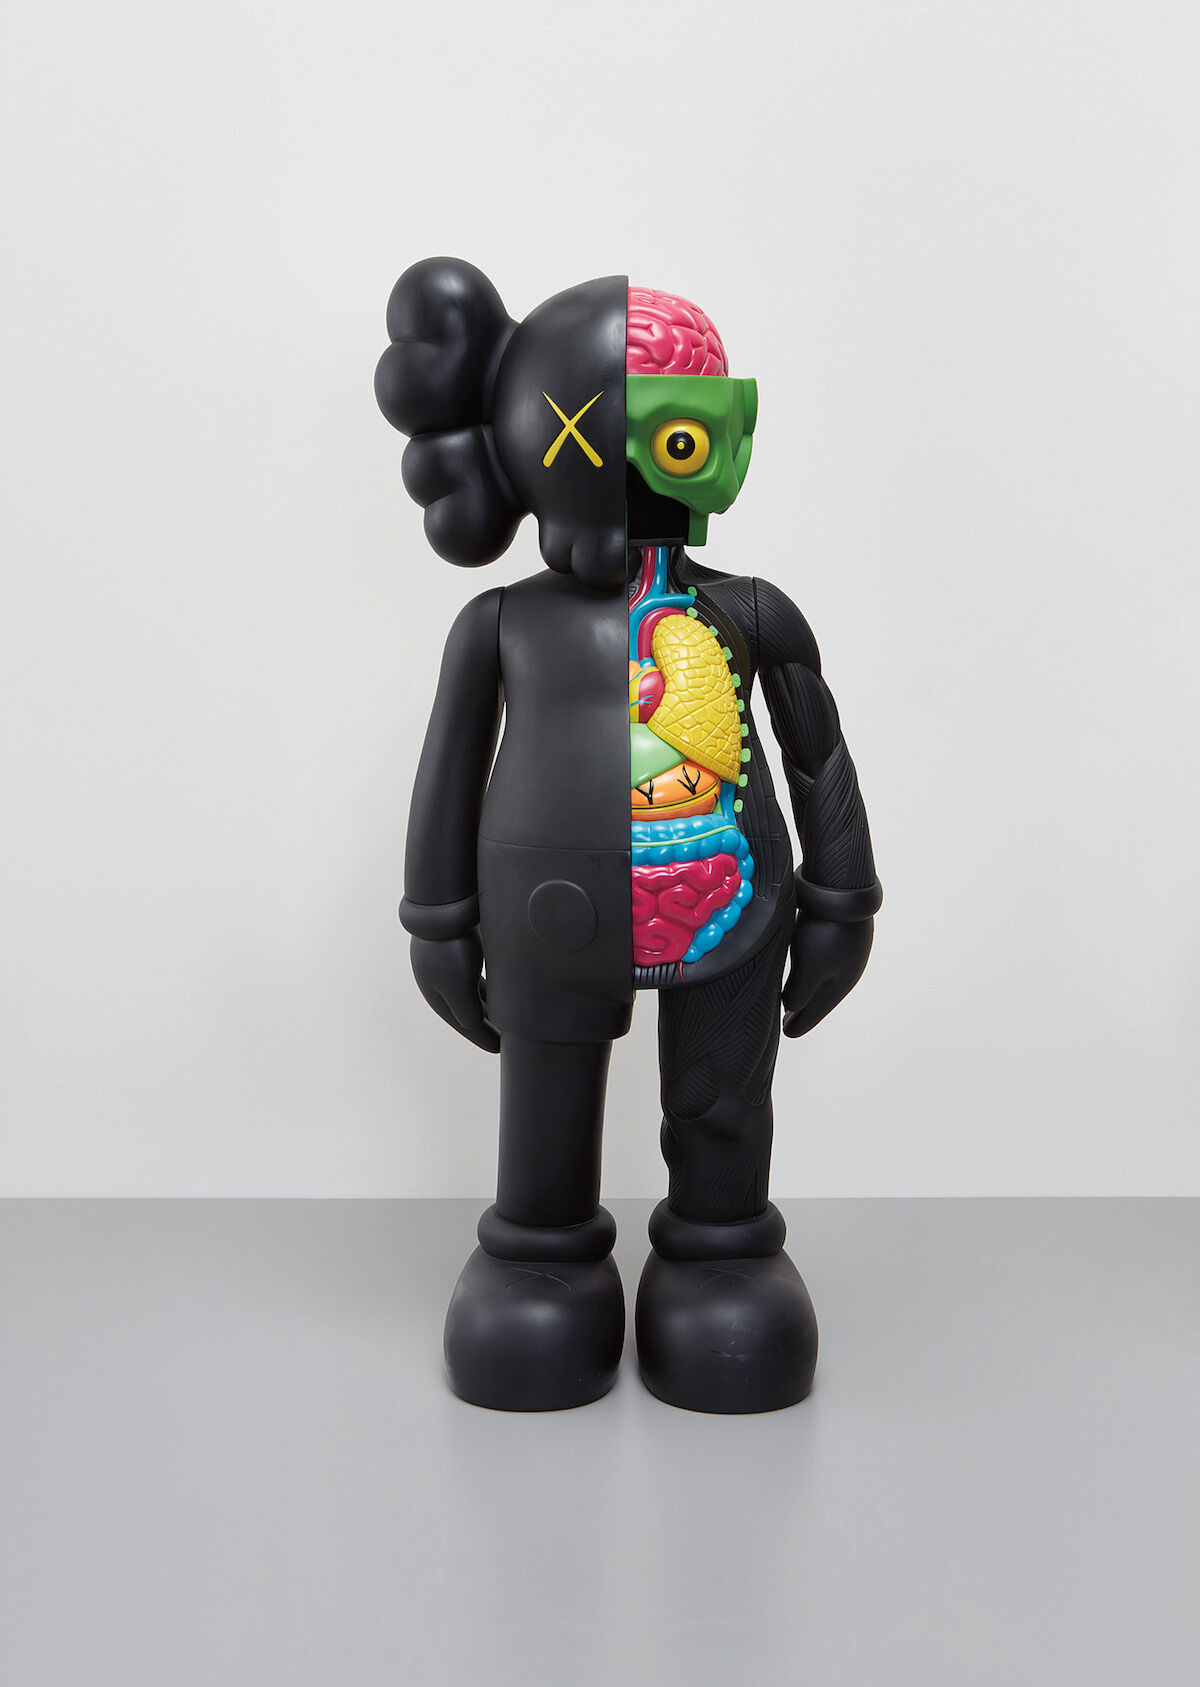 """KAWS, Four Foot Dissected Companion (Black), 2009, sold for $118,750, at Phillips """"New Now"""" sale. Image courtesy of Phillips."""